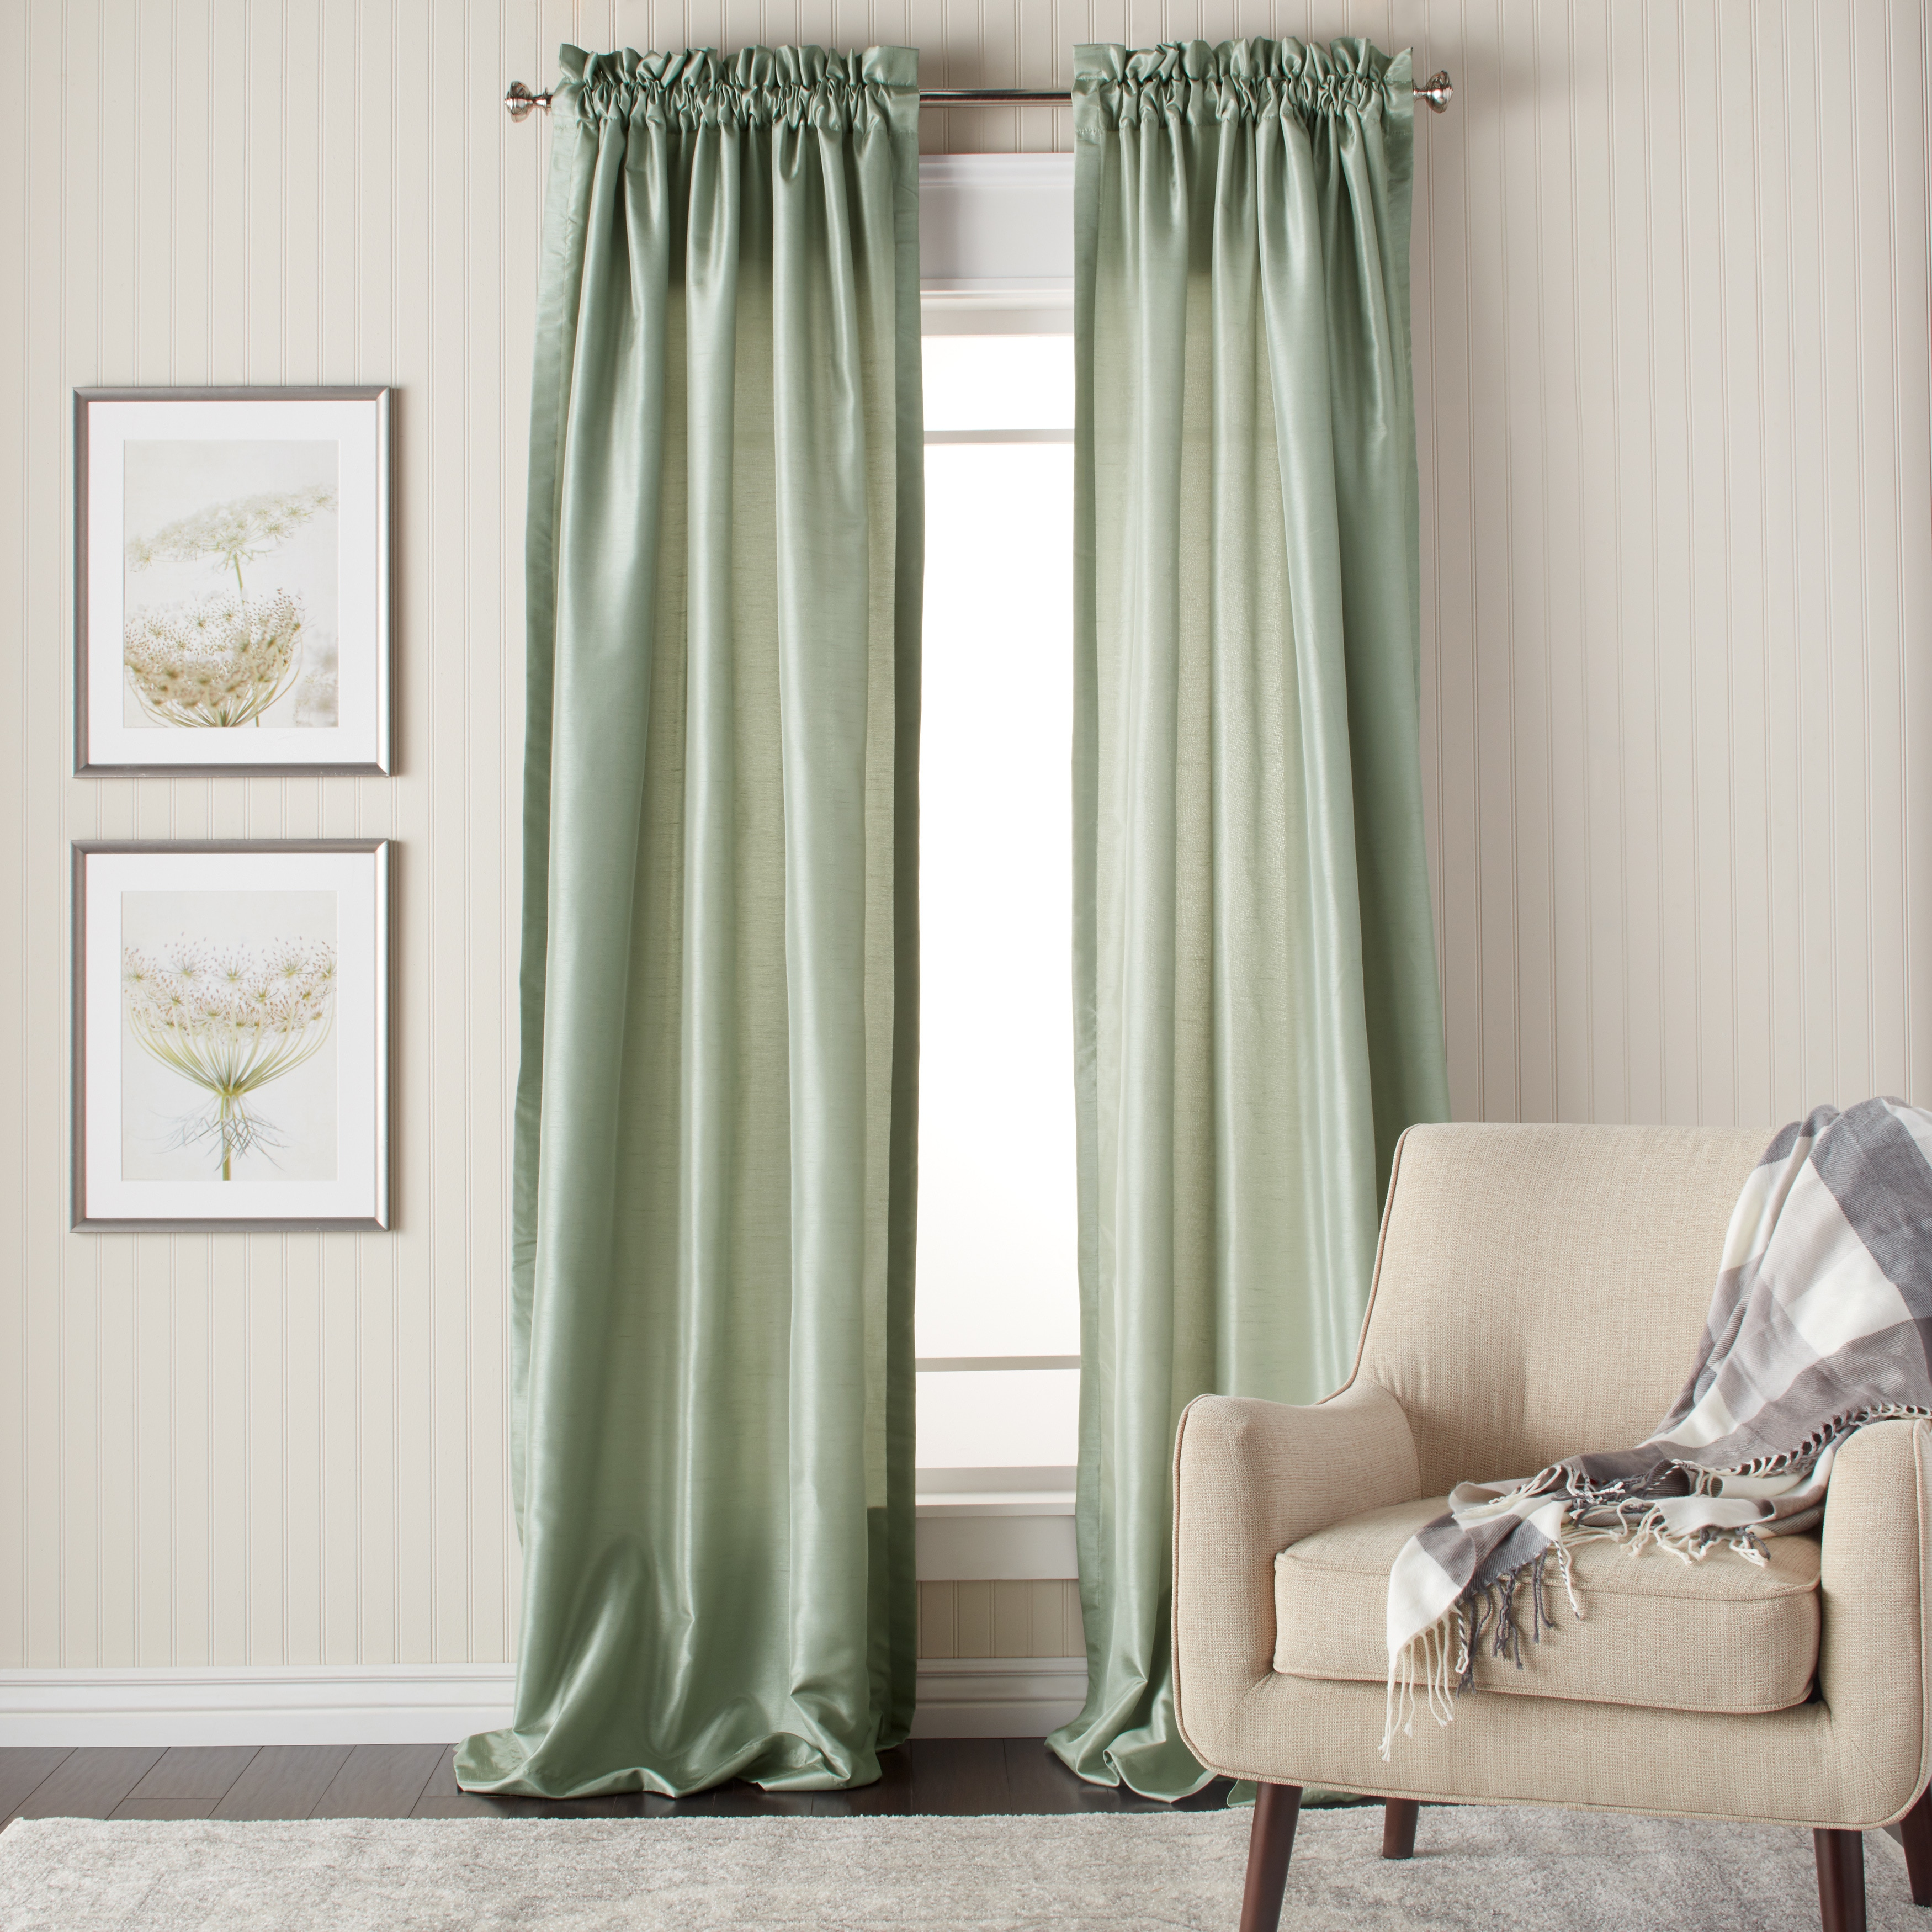 Green 108 Inches Curtains D Online At Our Best Window Treatments Deals